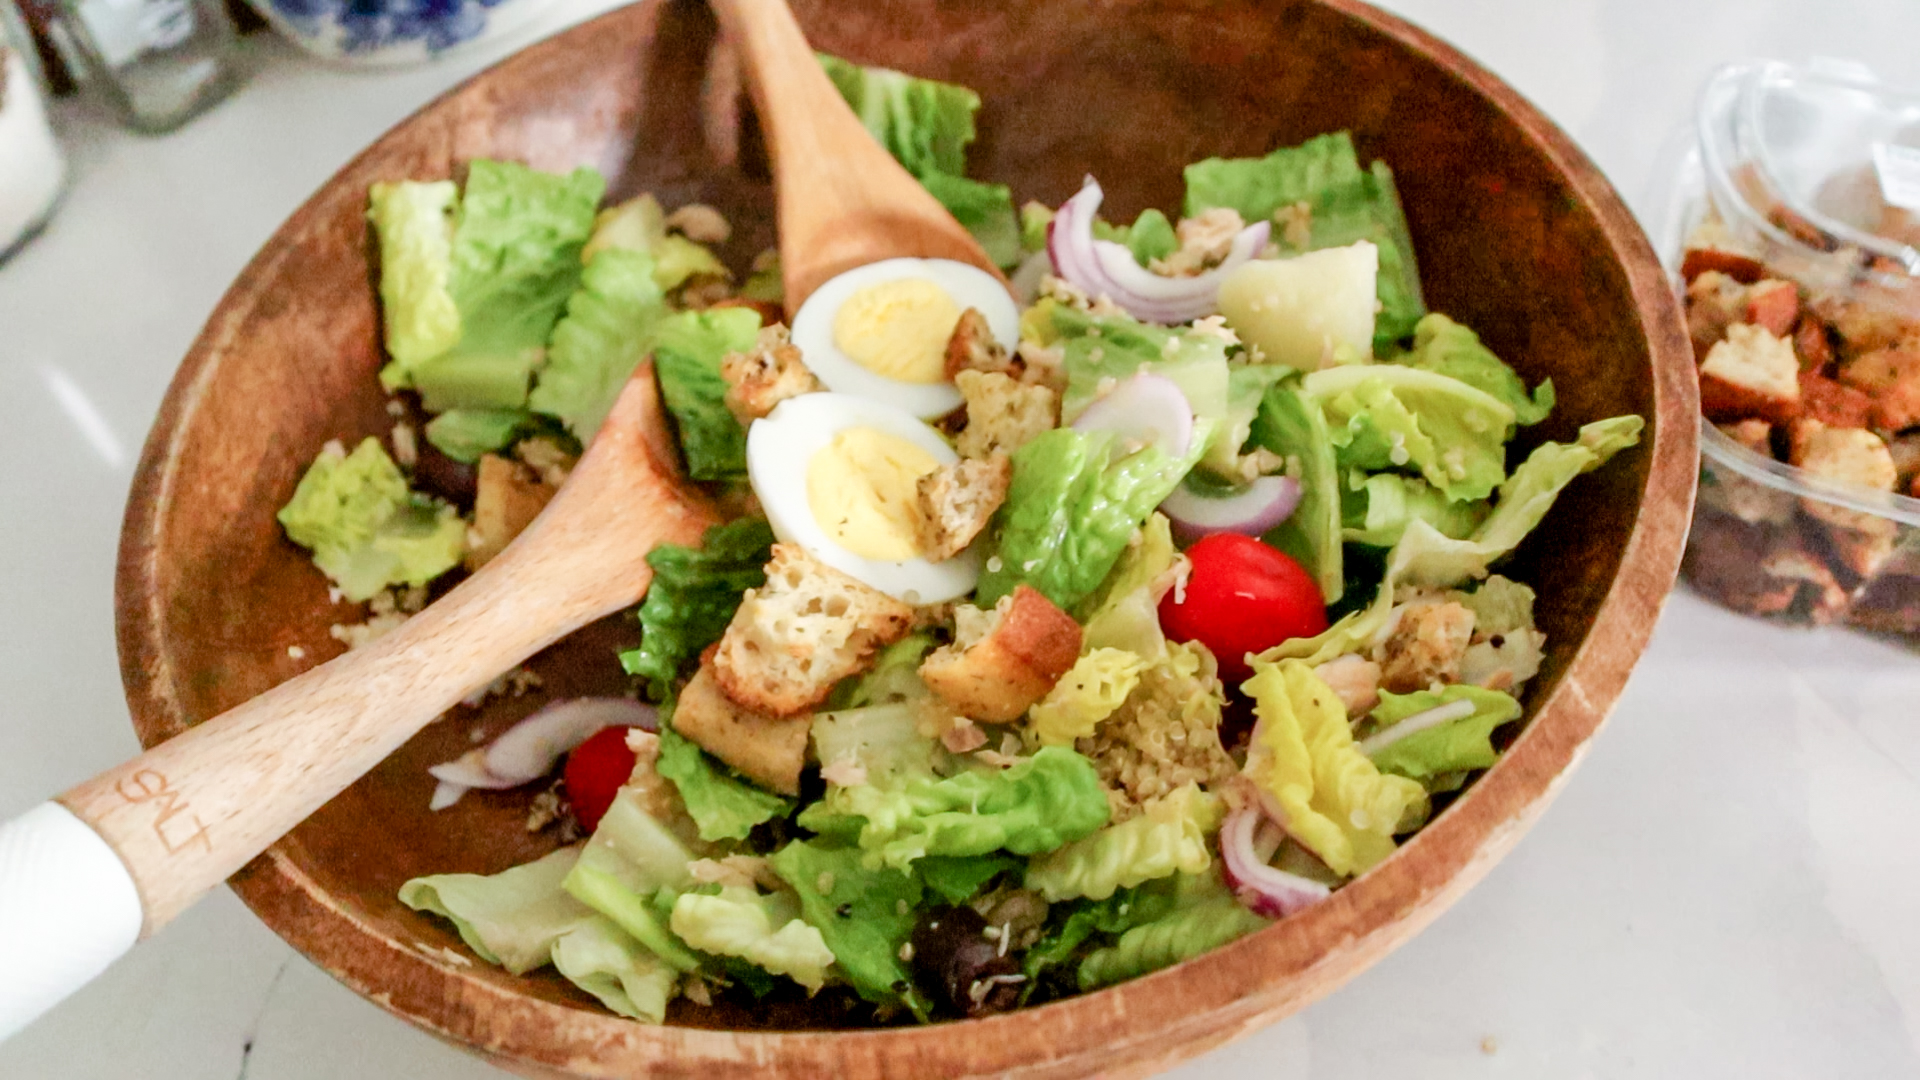 a nicoise salad in a wooden bowl